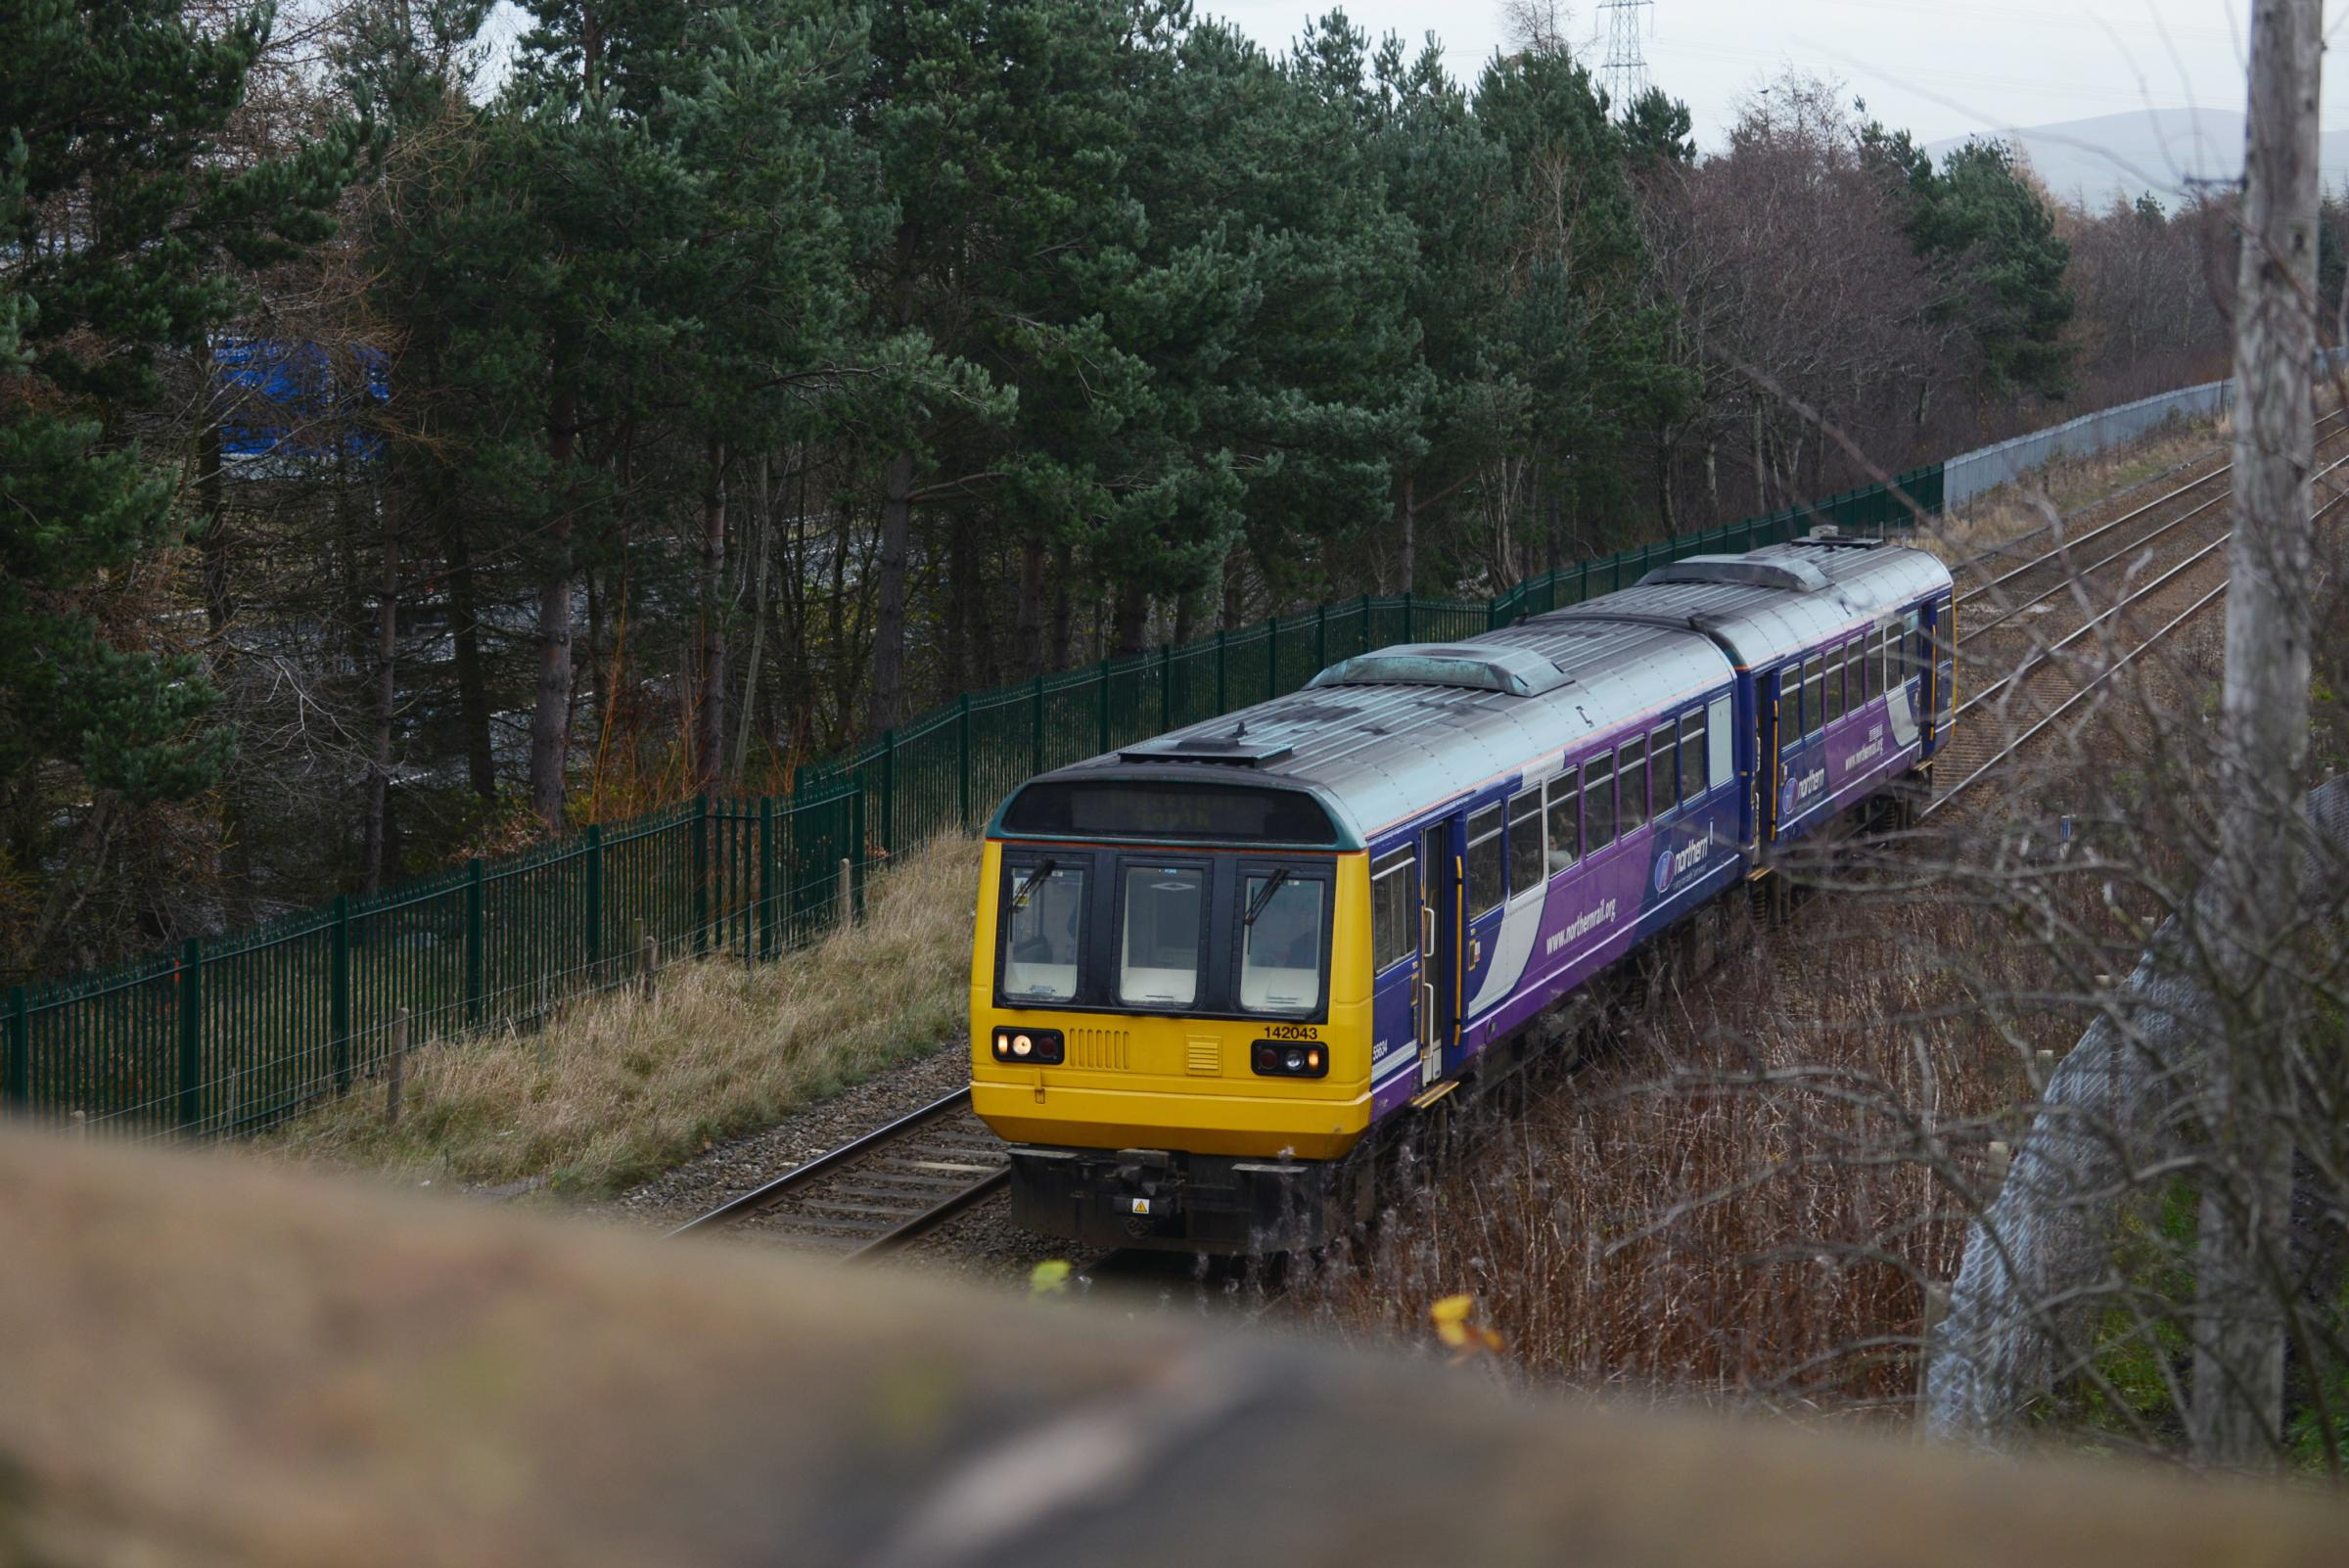 Yorkshire leaders have told MPs that the process for planning rail improvements needs an urgent overhaul